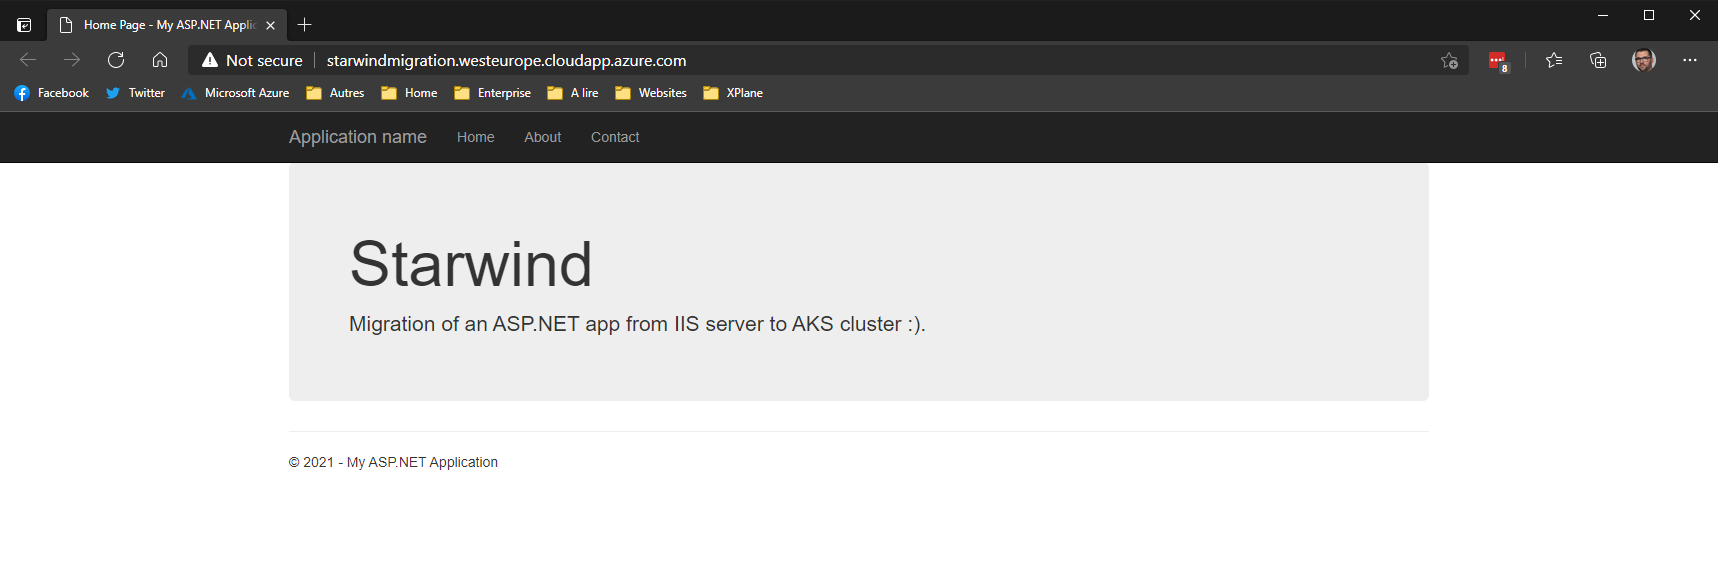 How to migrate an ASP.NET website, from an IIS server, to an AKS cluster